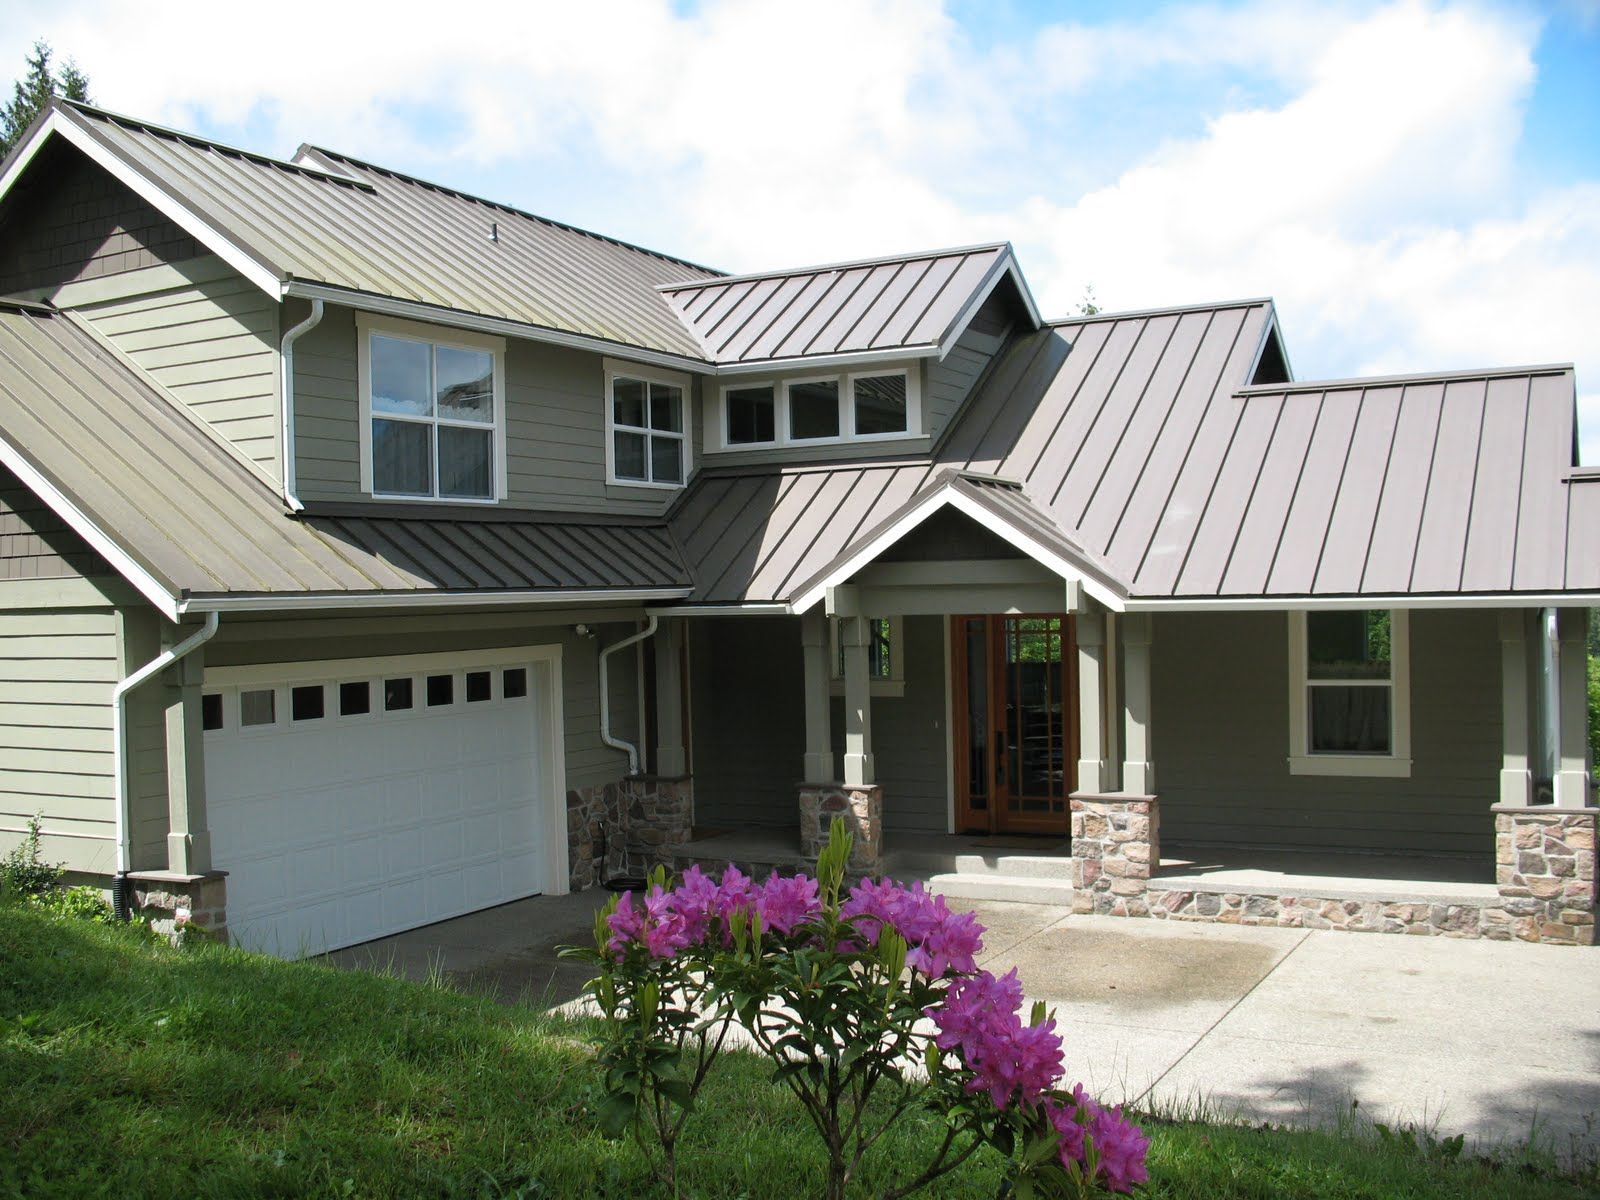 Mountain craftsman homes metal roof google search for Metal roof craftsman home